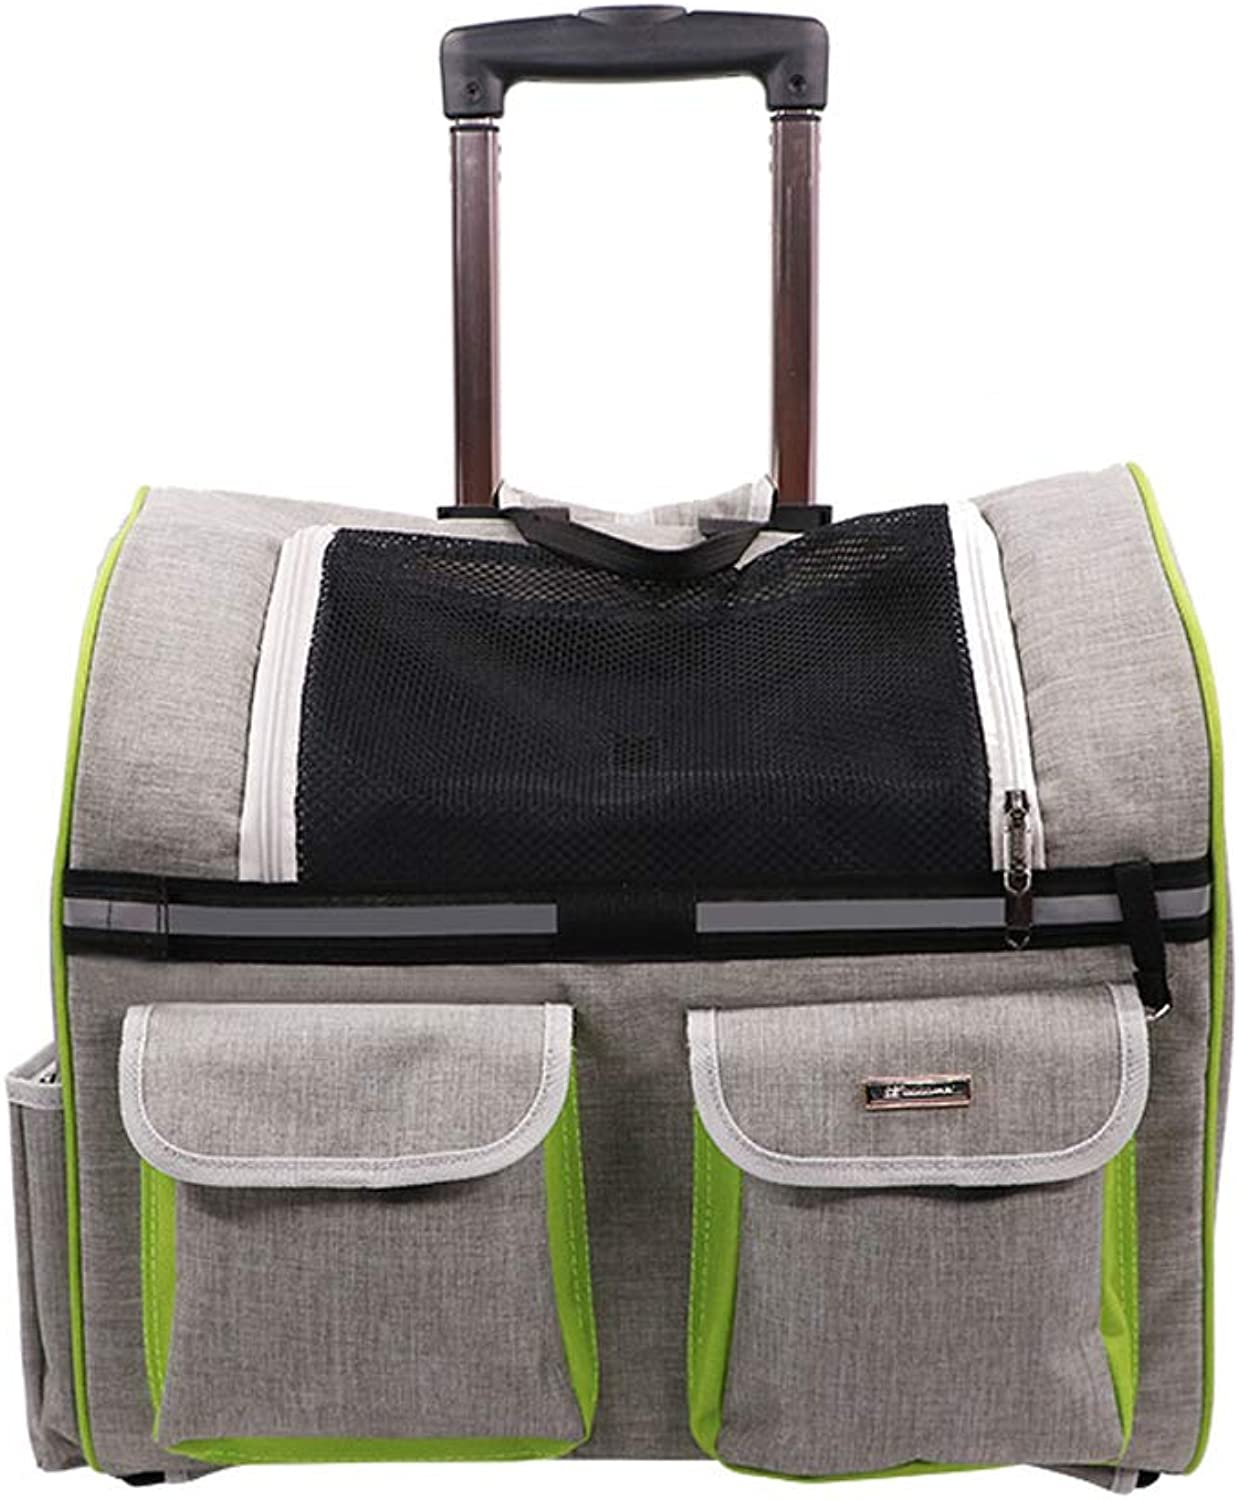 Mjd lamp lamp Pet Dog Trolley Suitcase Trolley Travel Bag Carrying Bag Of Cats And Dogs Out